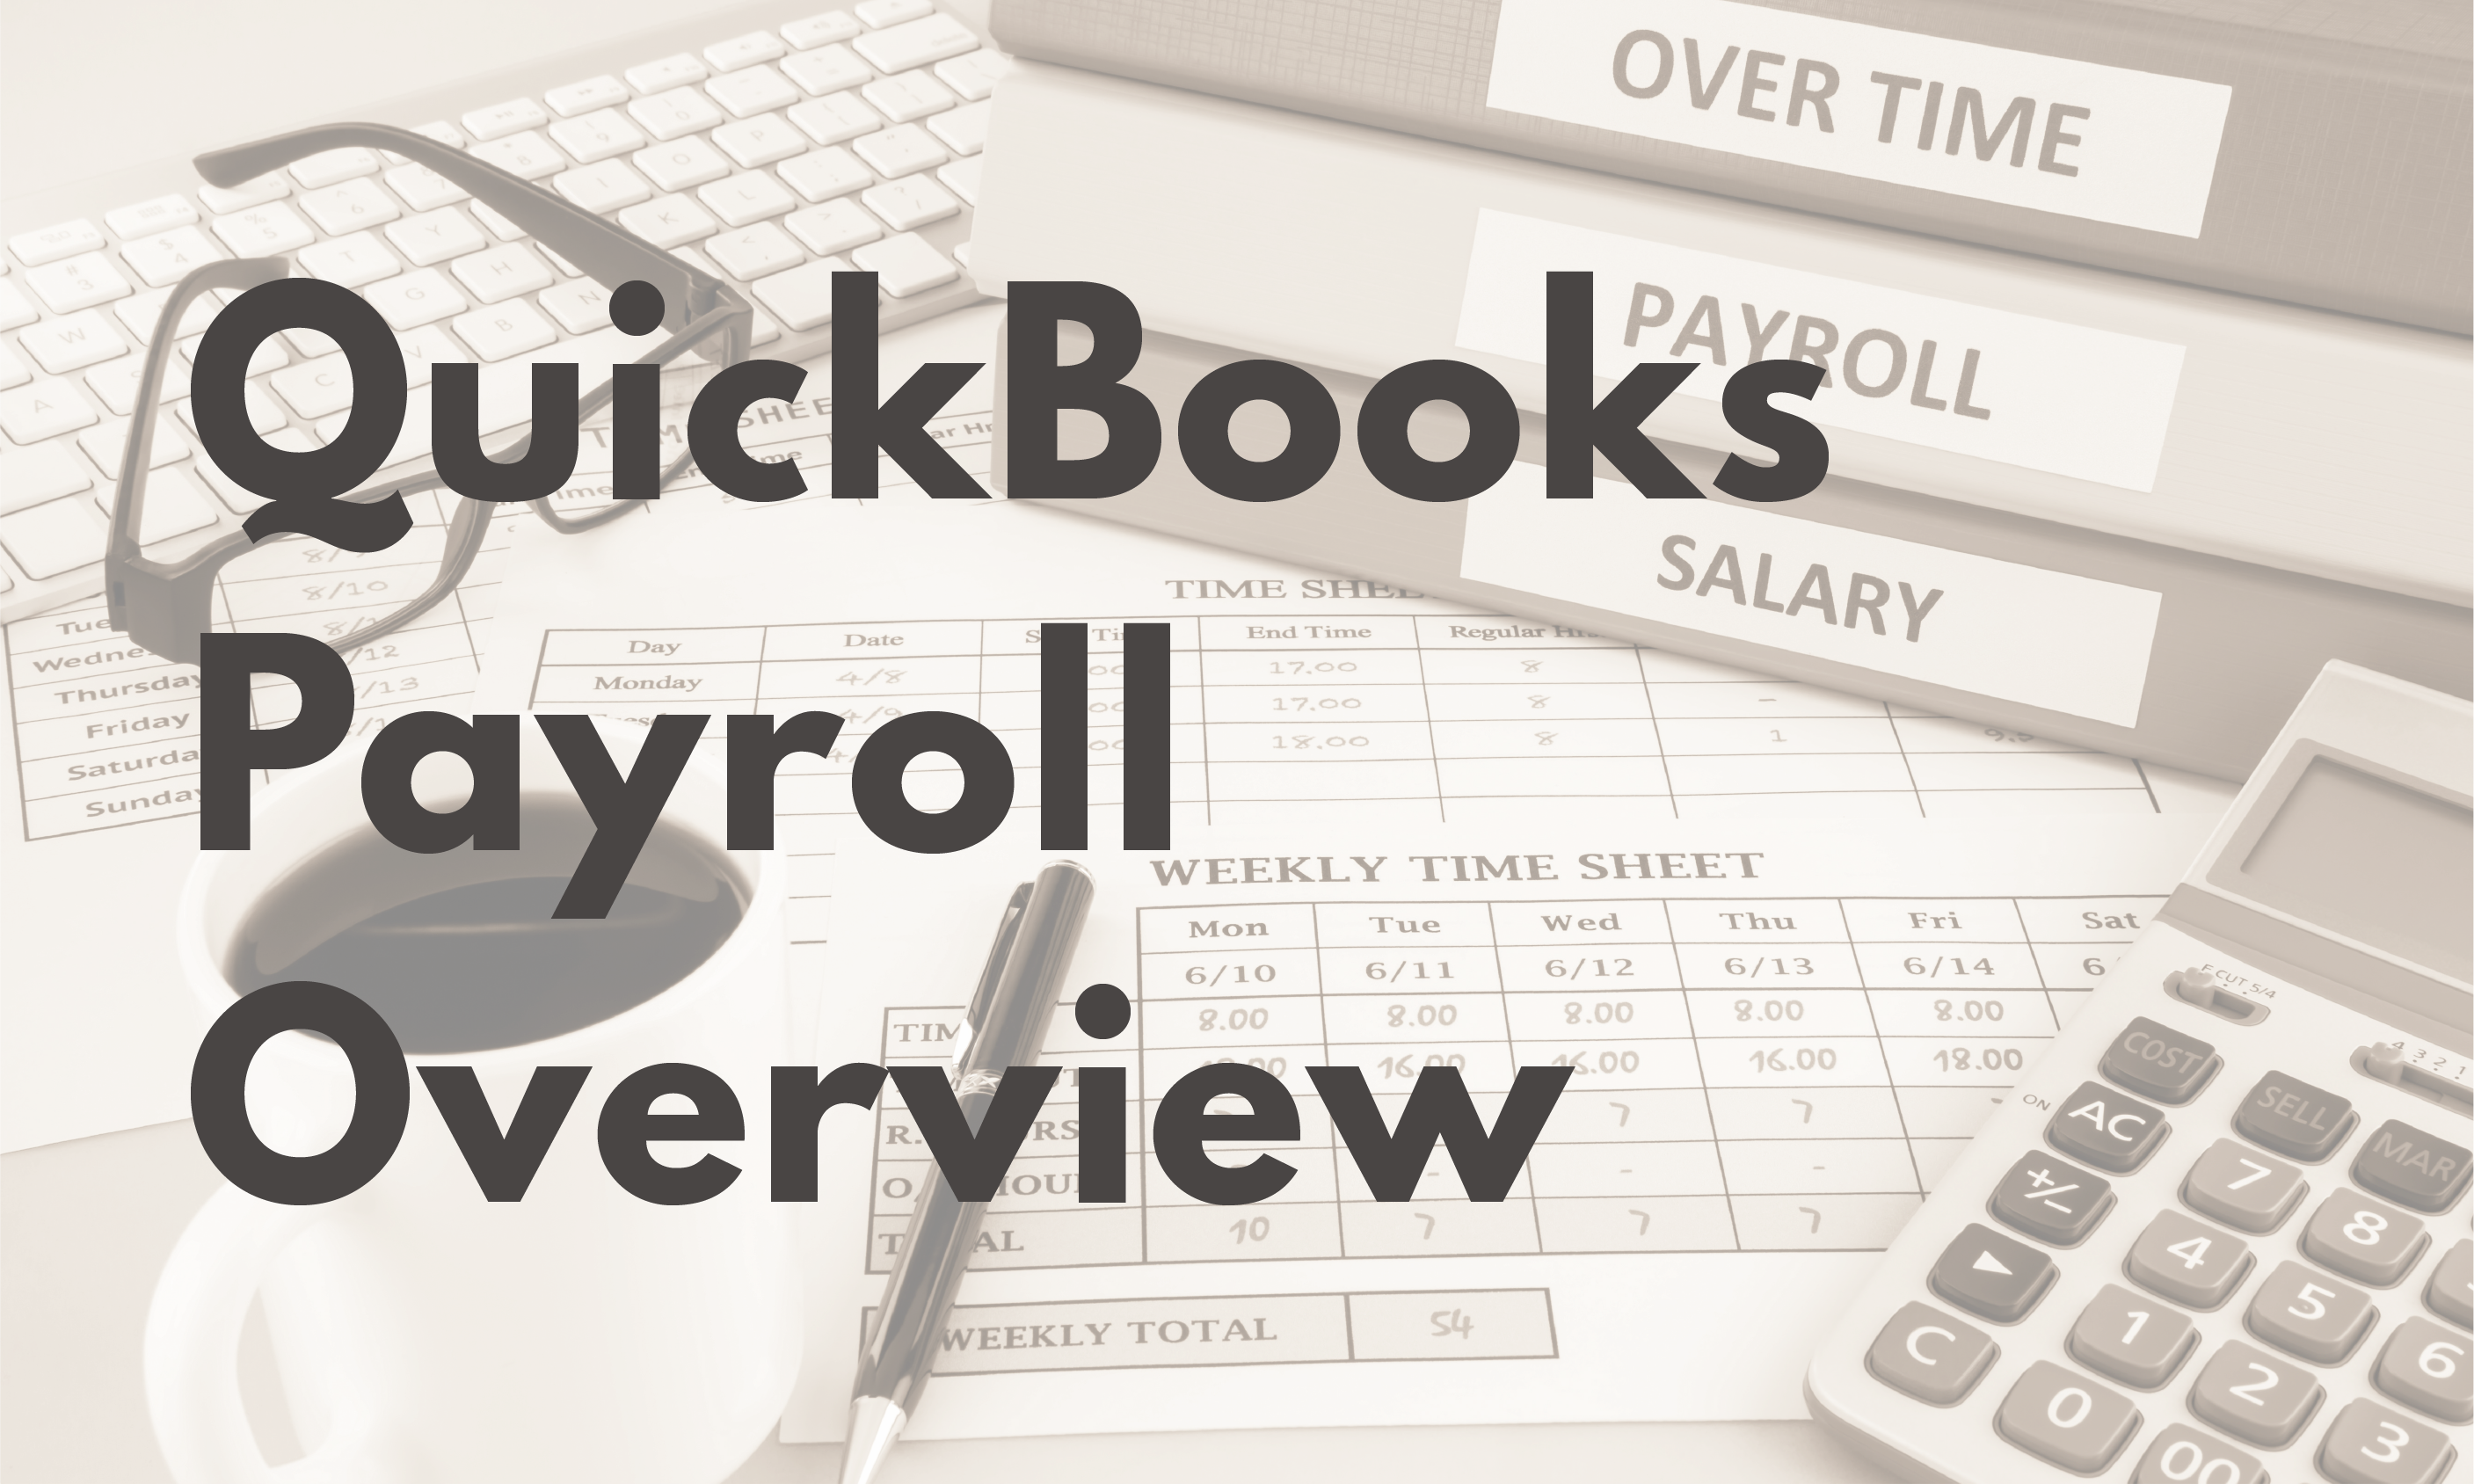 QuickBooks Payroll Overview